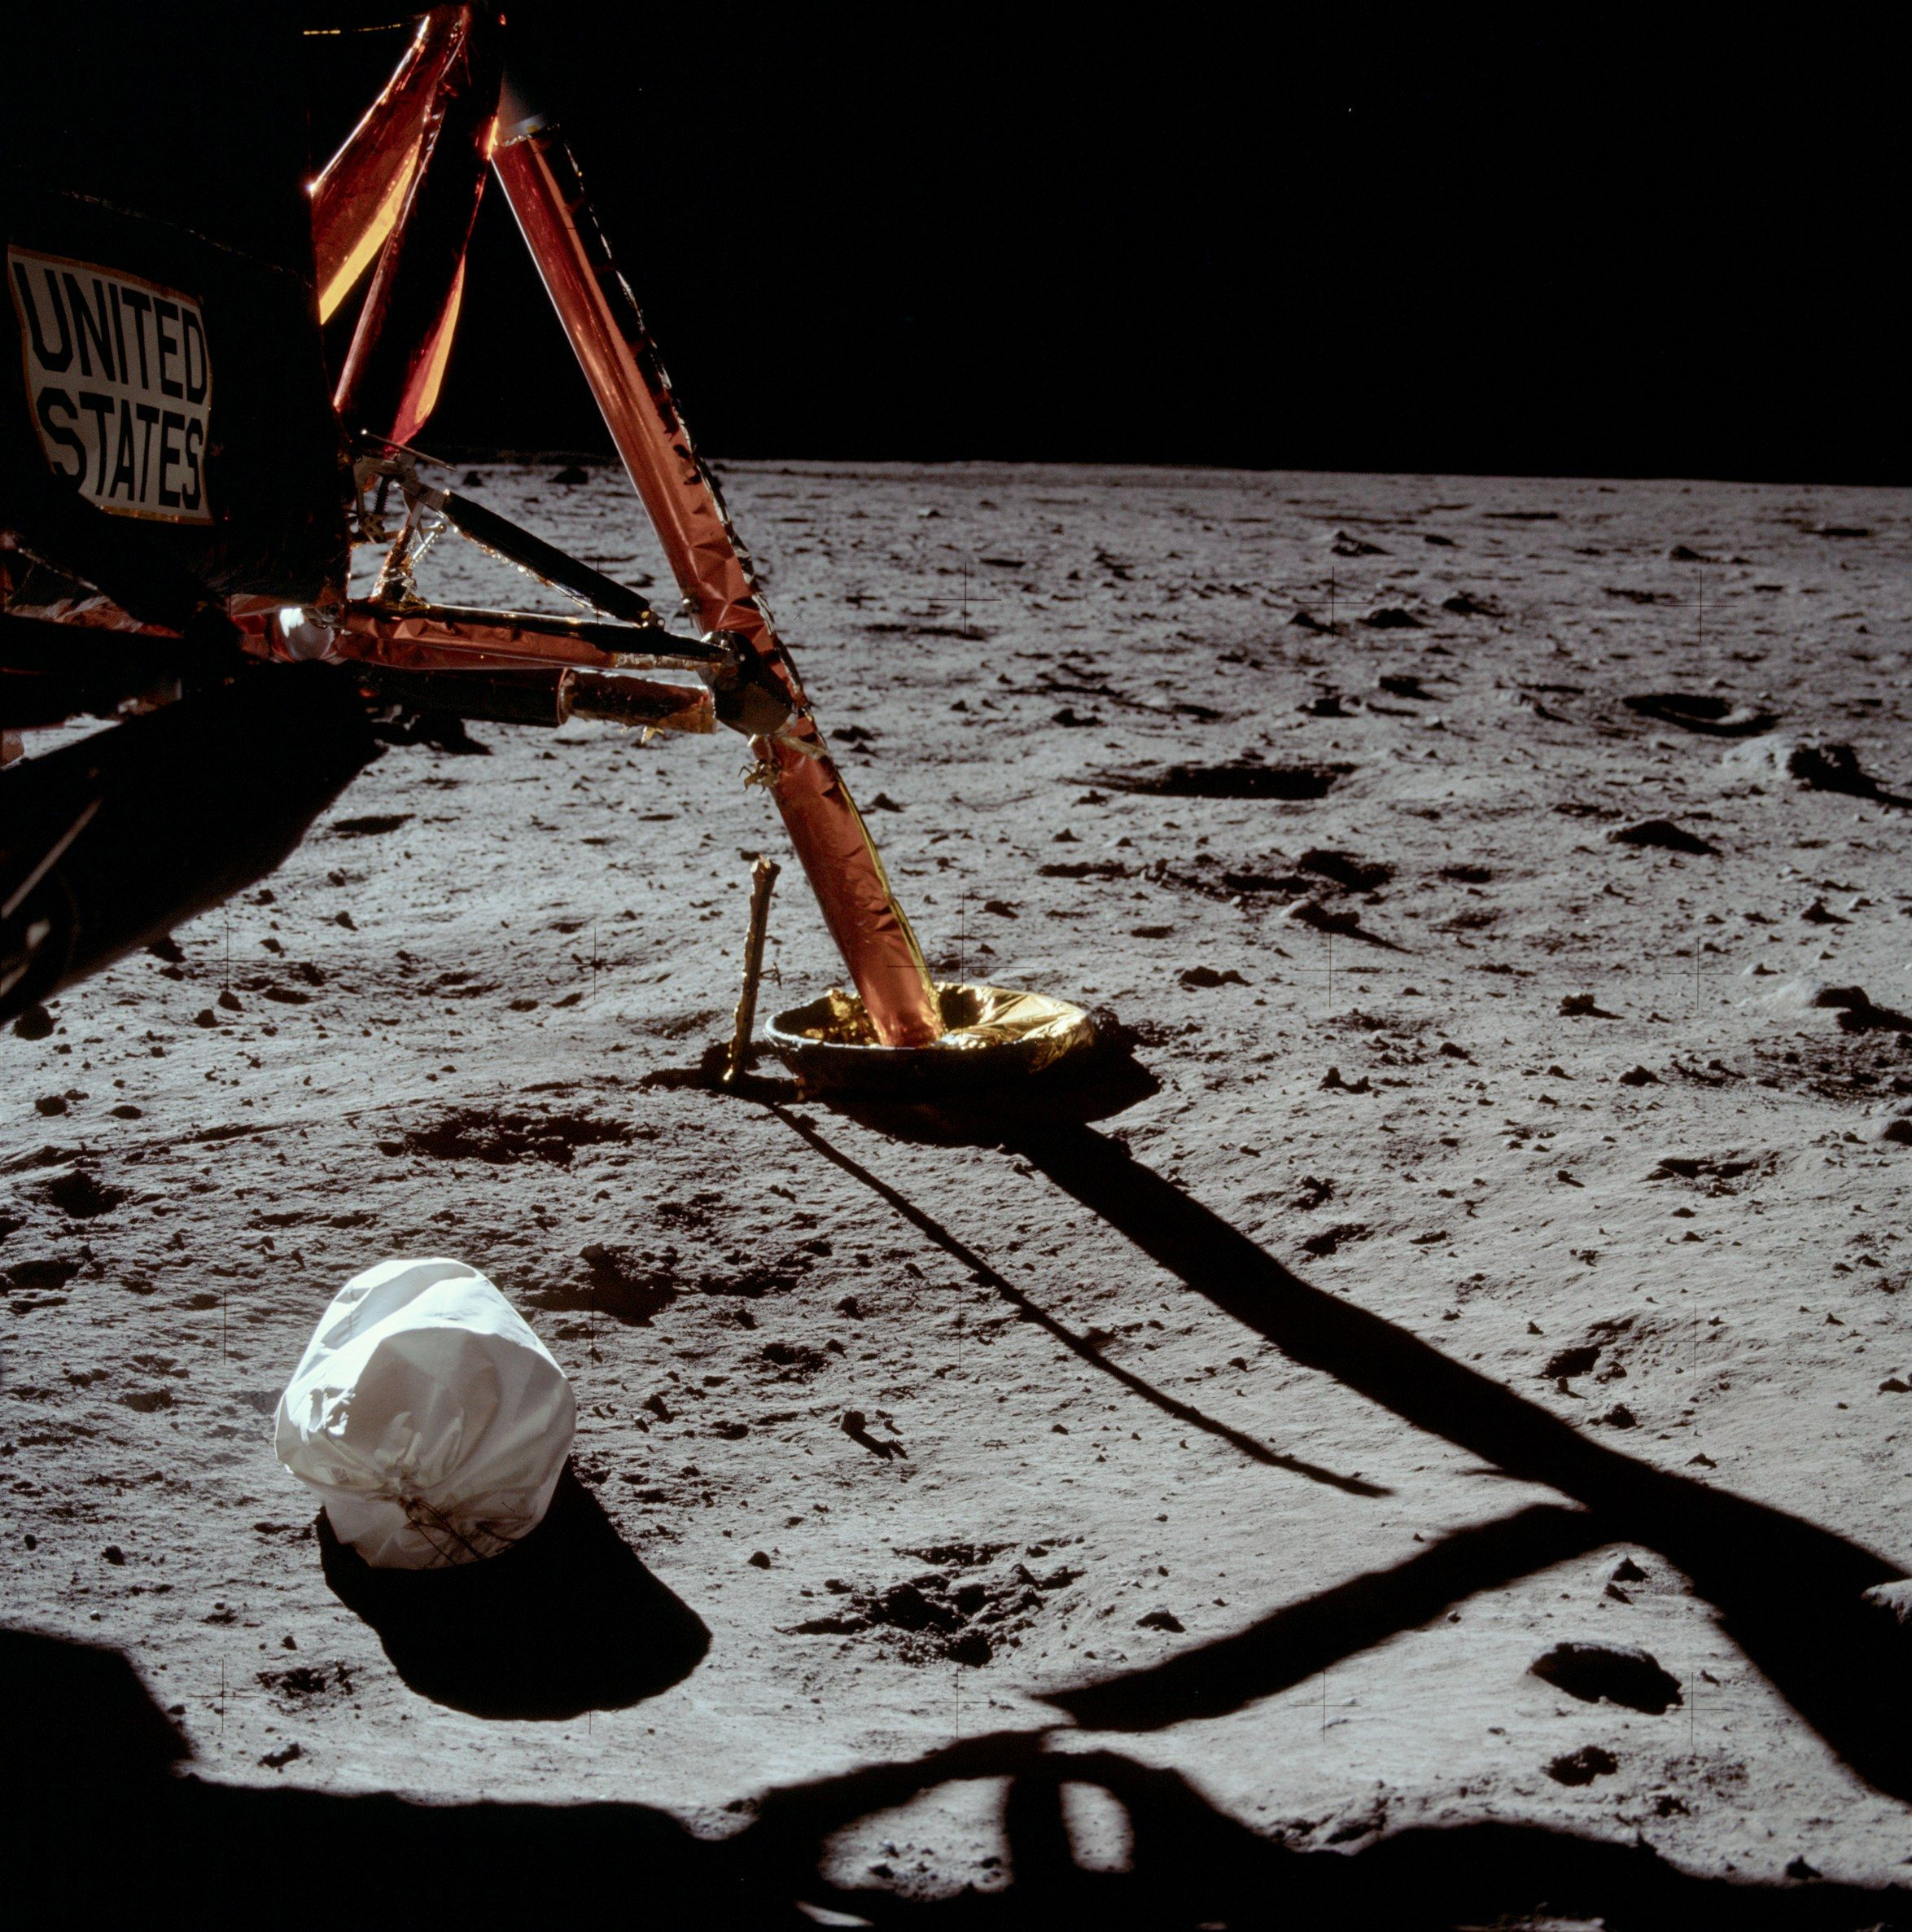 space missions after apollo - photo #46